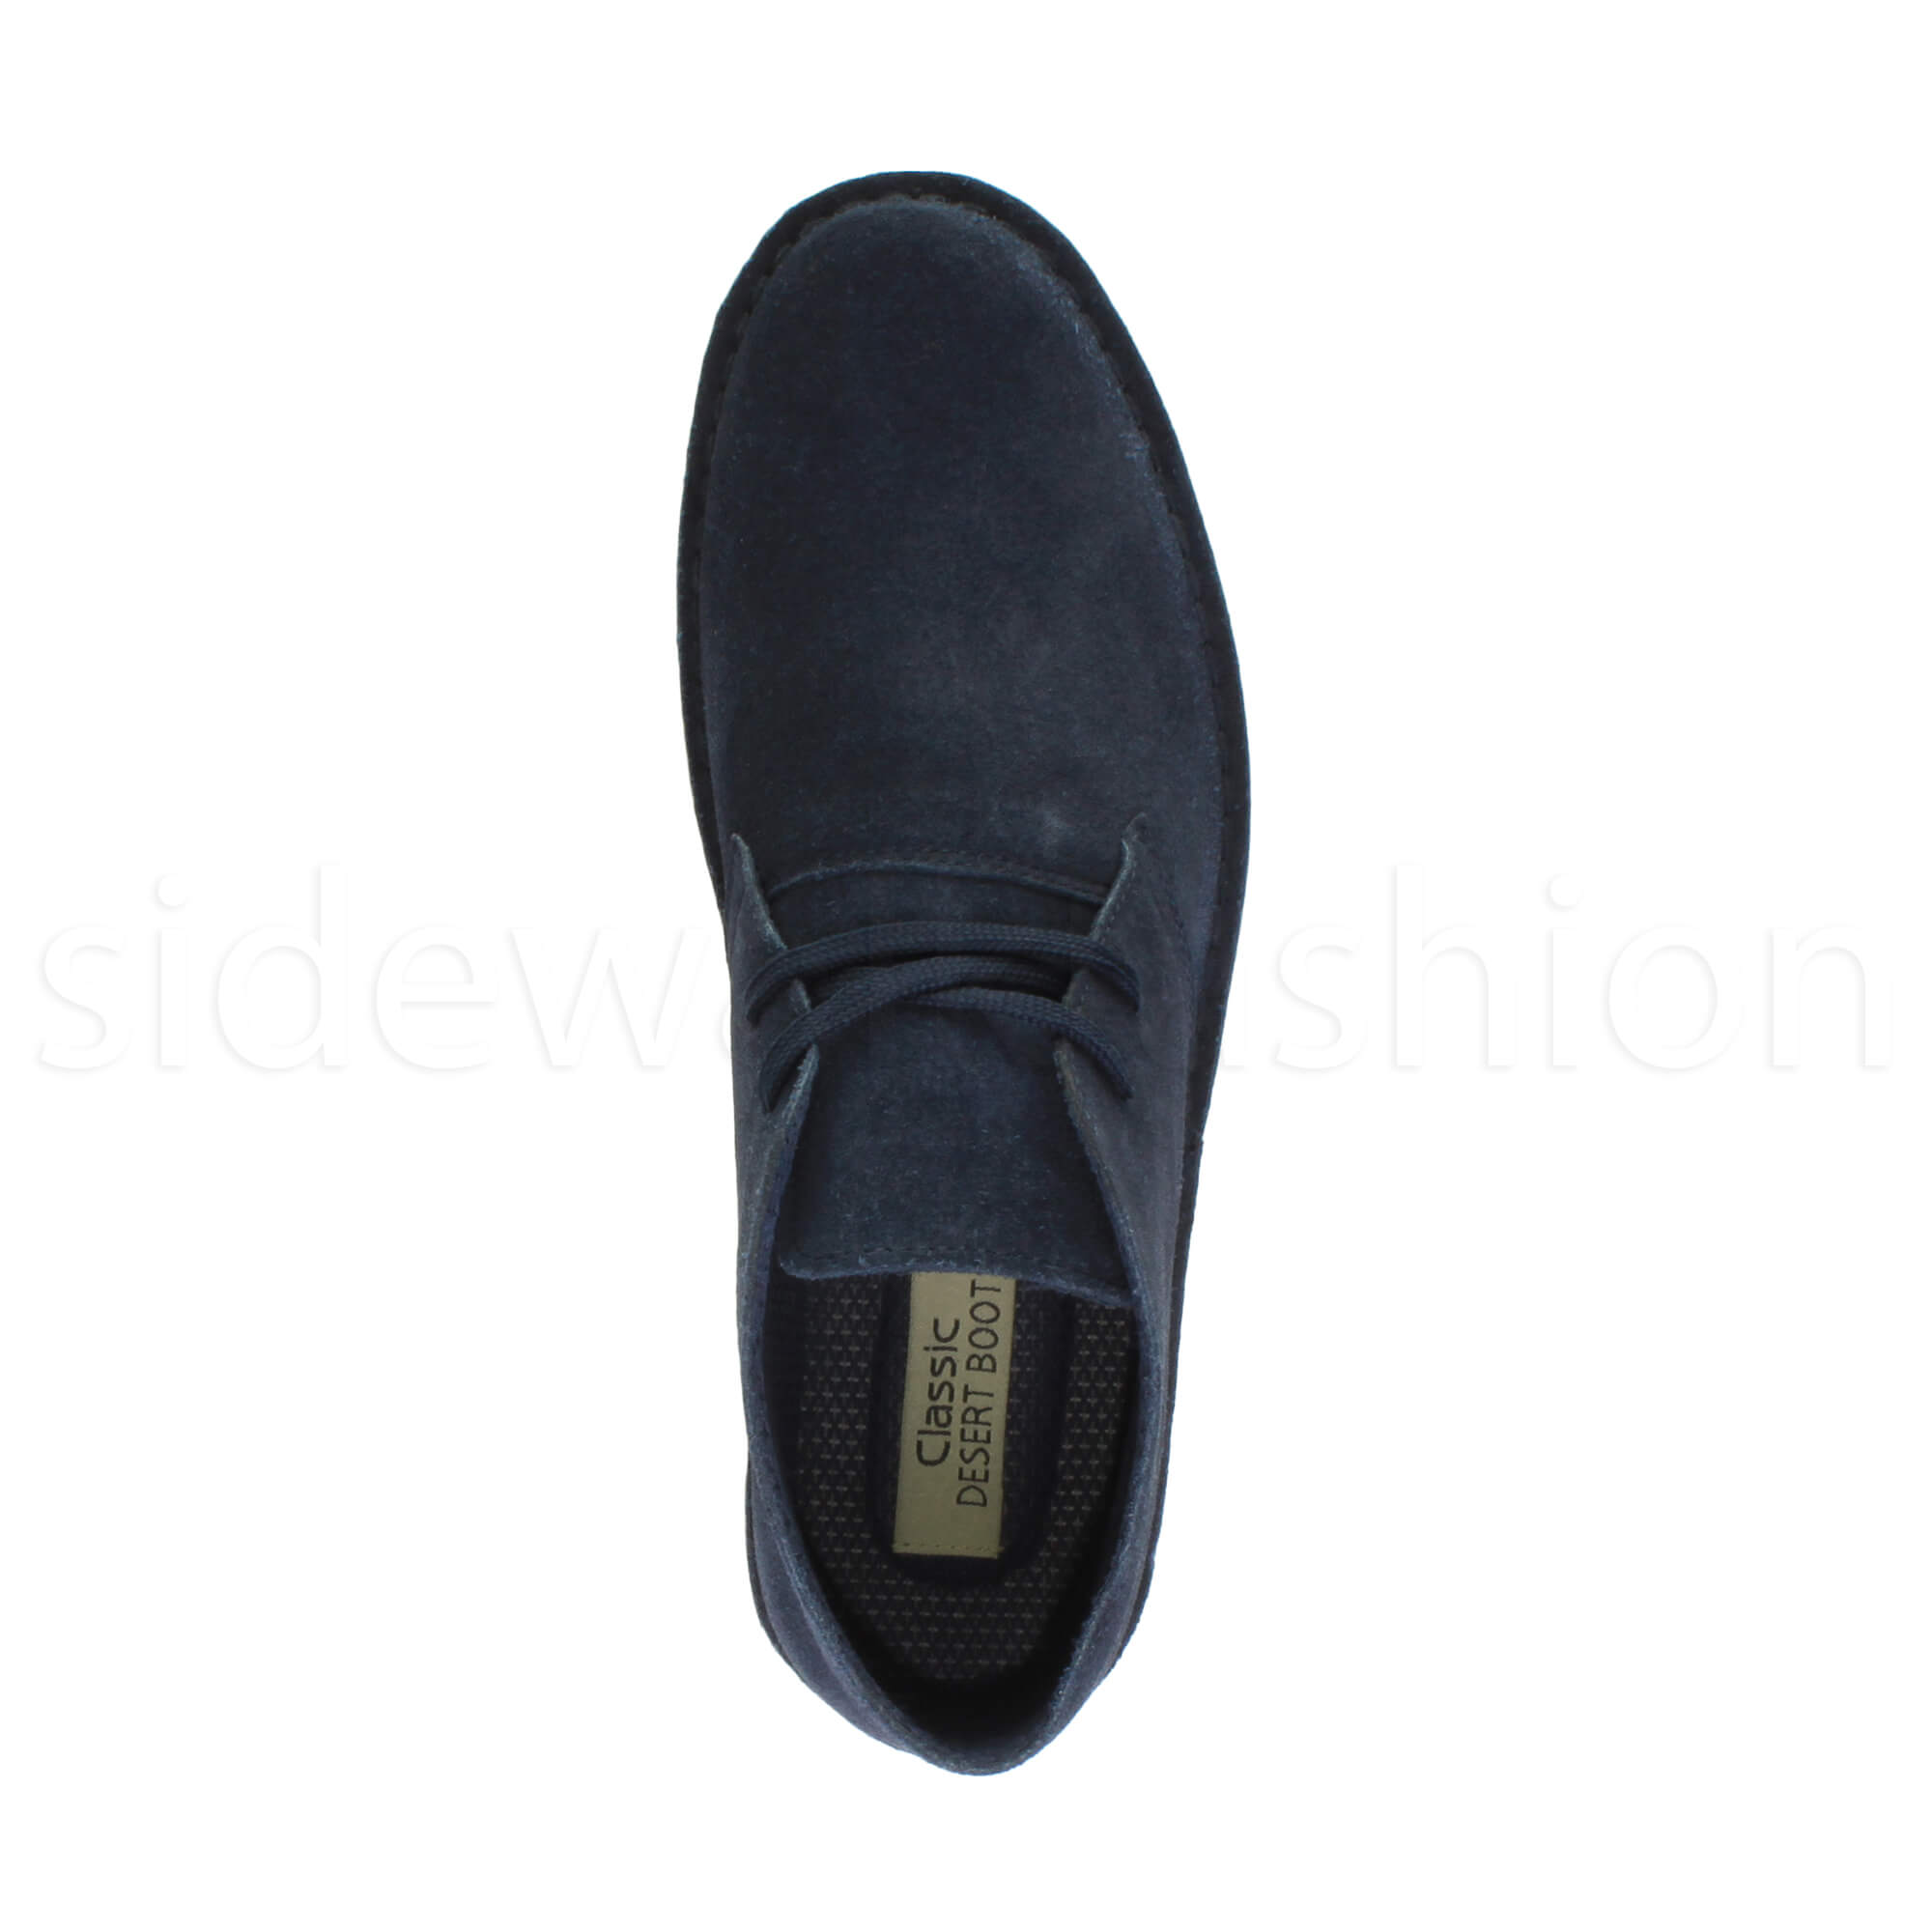 Mens-lace-up-rubber-sole-suede-ankle-chukka-desert-boots-classic-shoes-size thumbnail 22